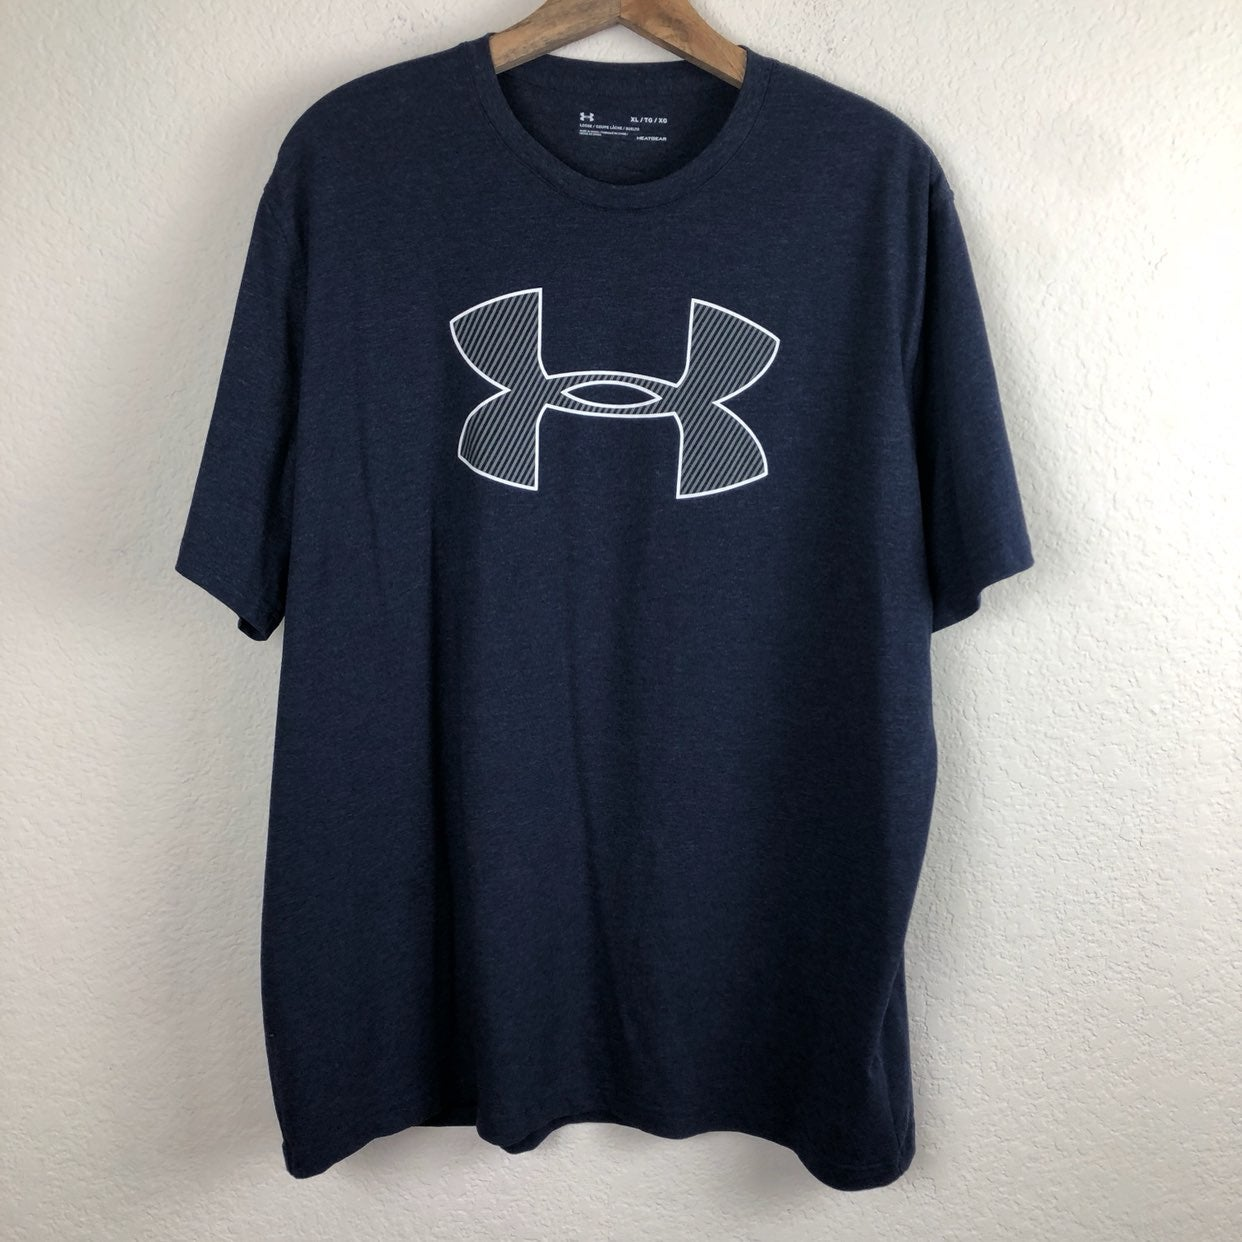 Under Armour Men's Blue gray T-shirt XL